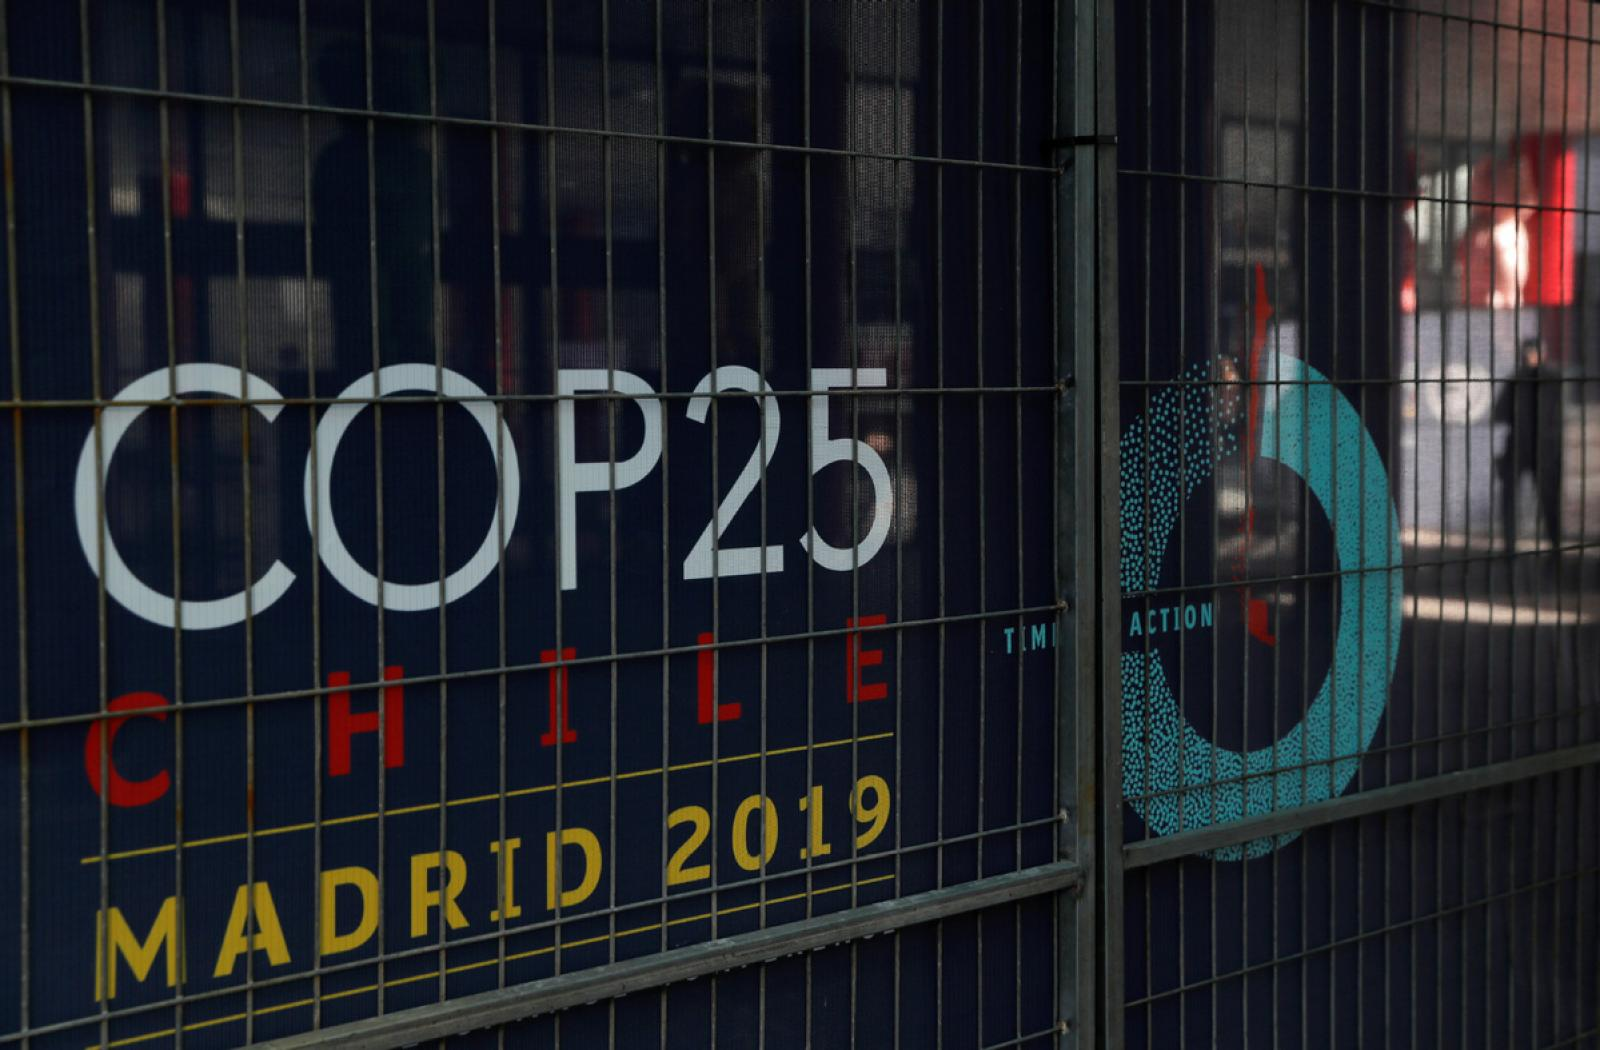 cancello della IFEMA conventions center, Madrid, Spain, sede della COP25. December 2, 2019. [Photo/Agencies]